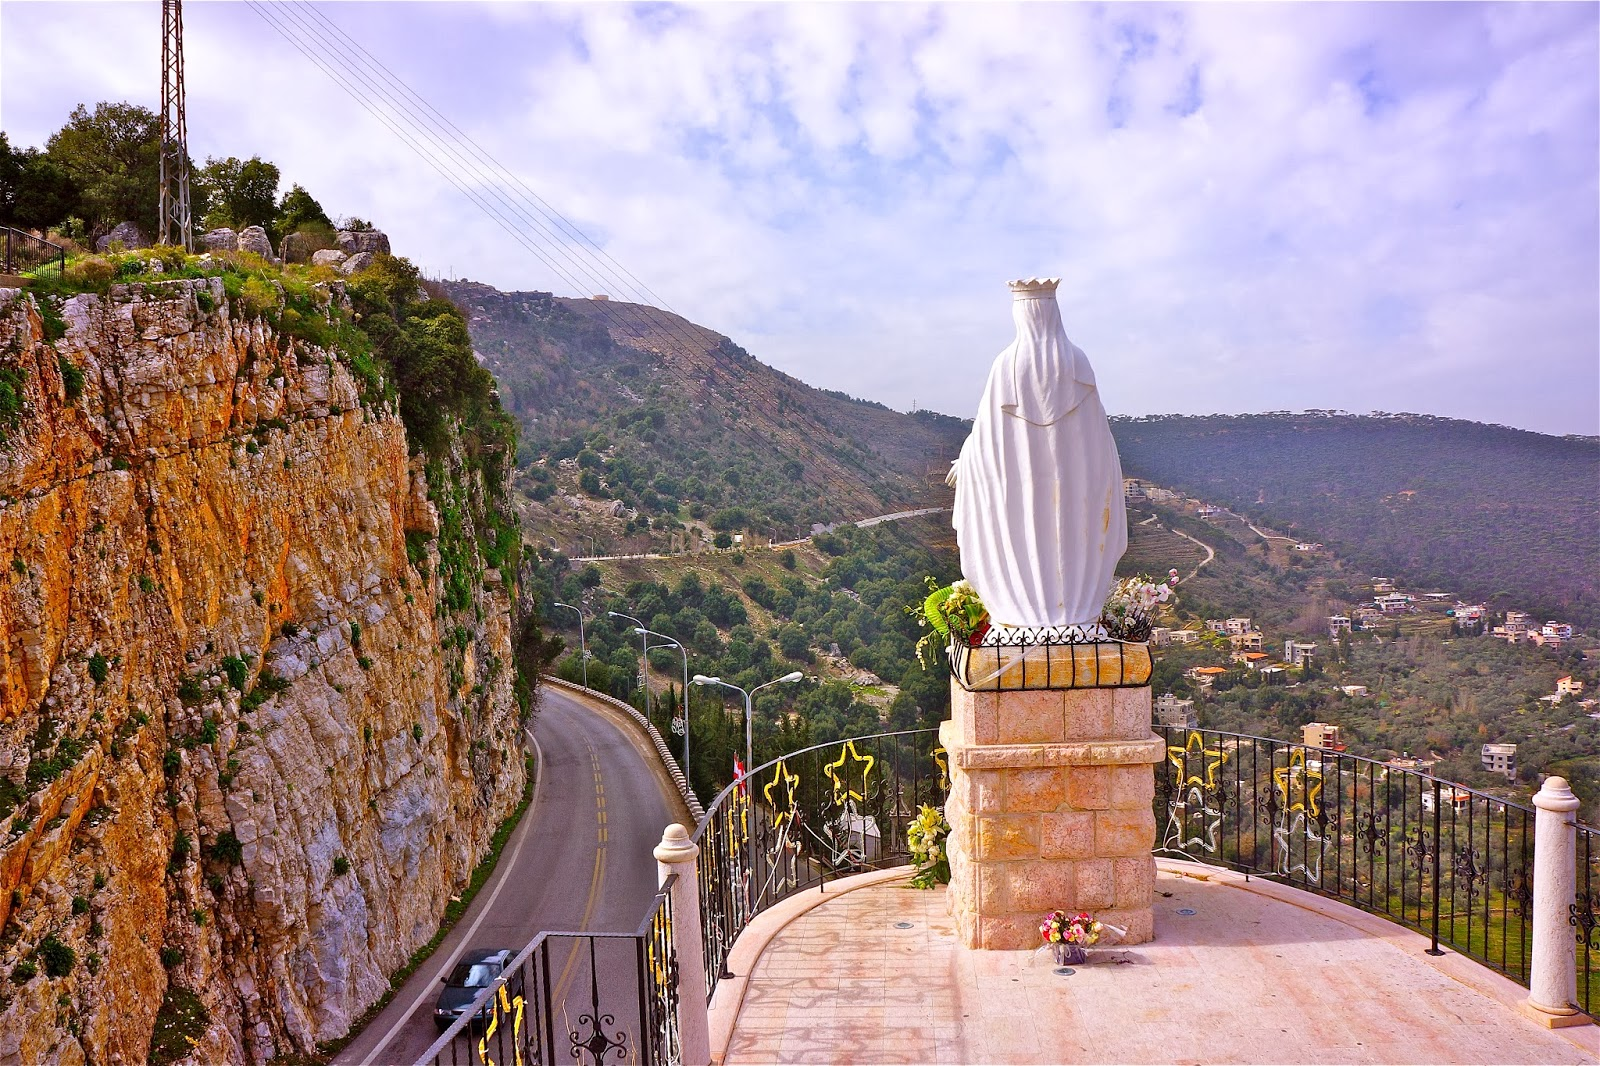 Picture from Jezzine in South Lebanon.